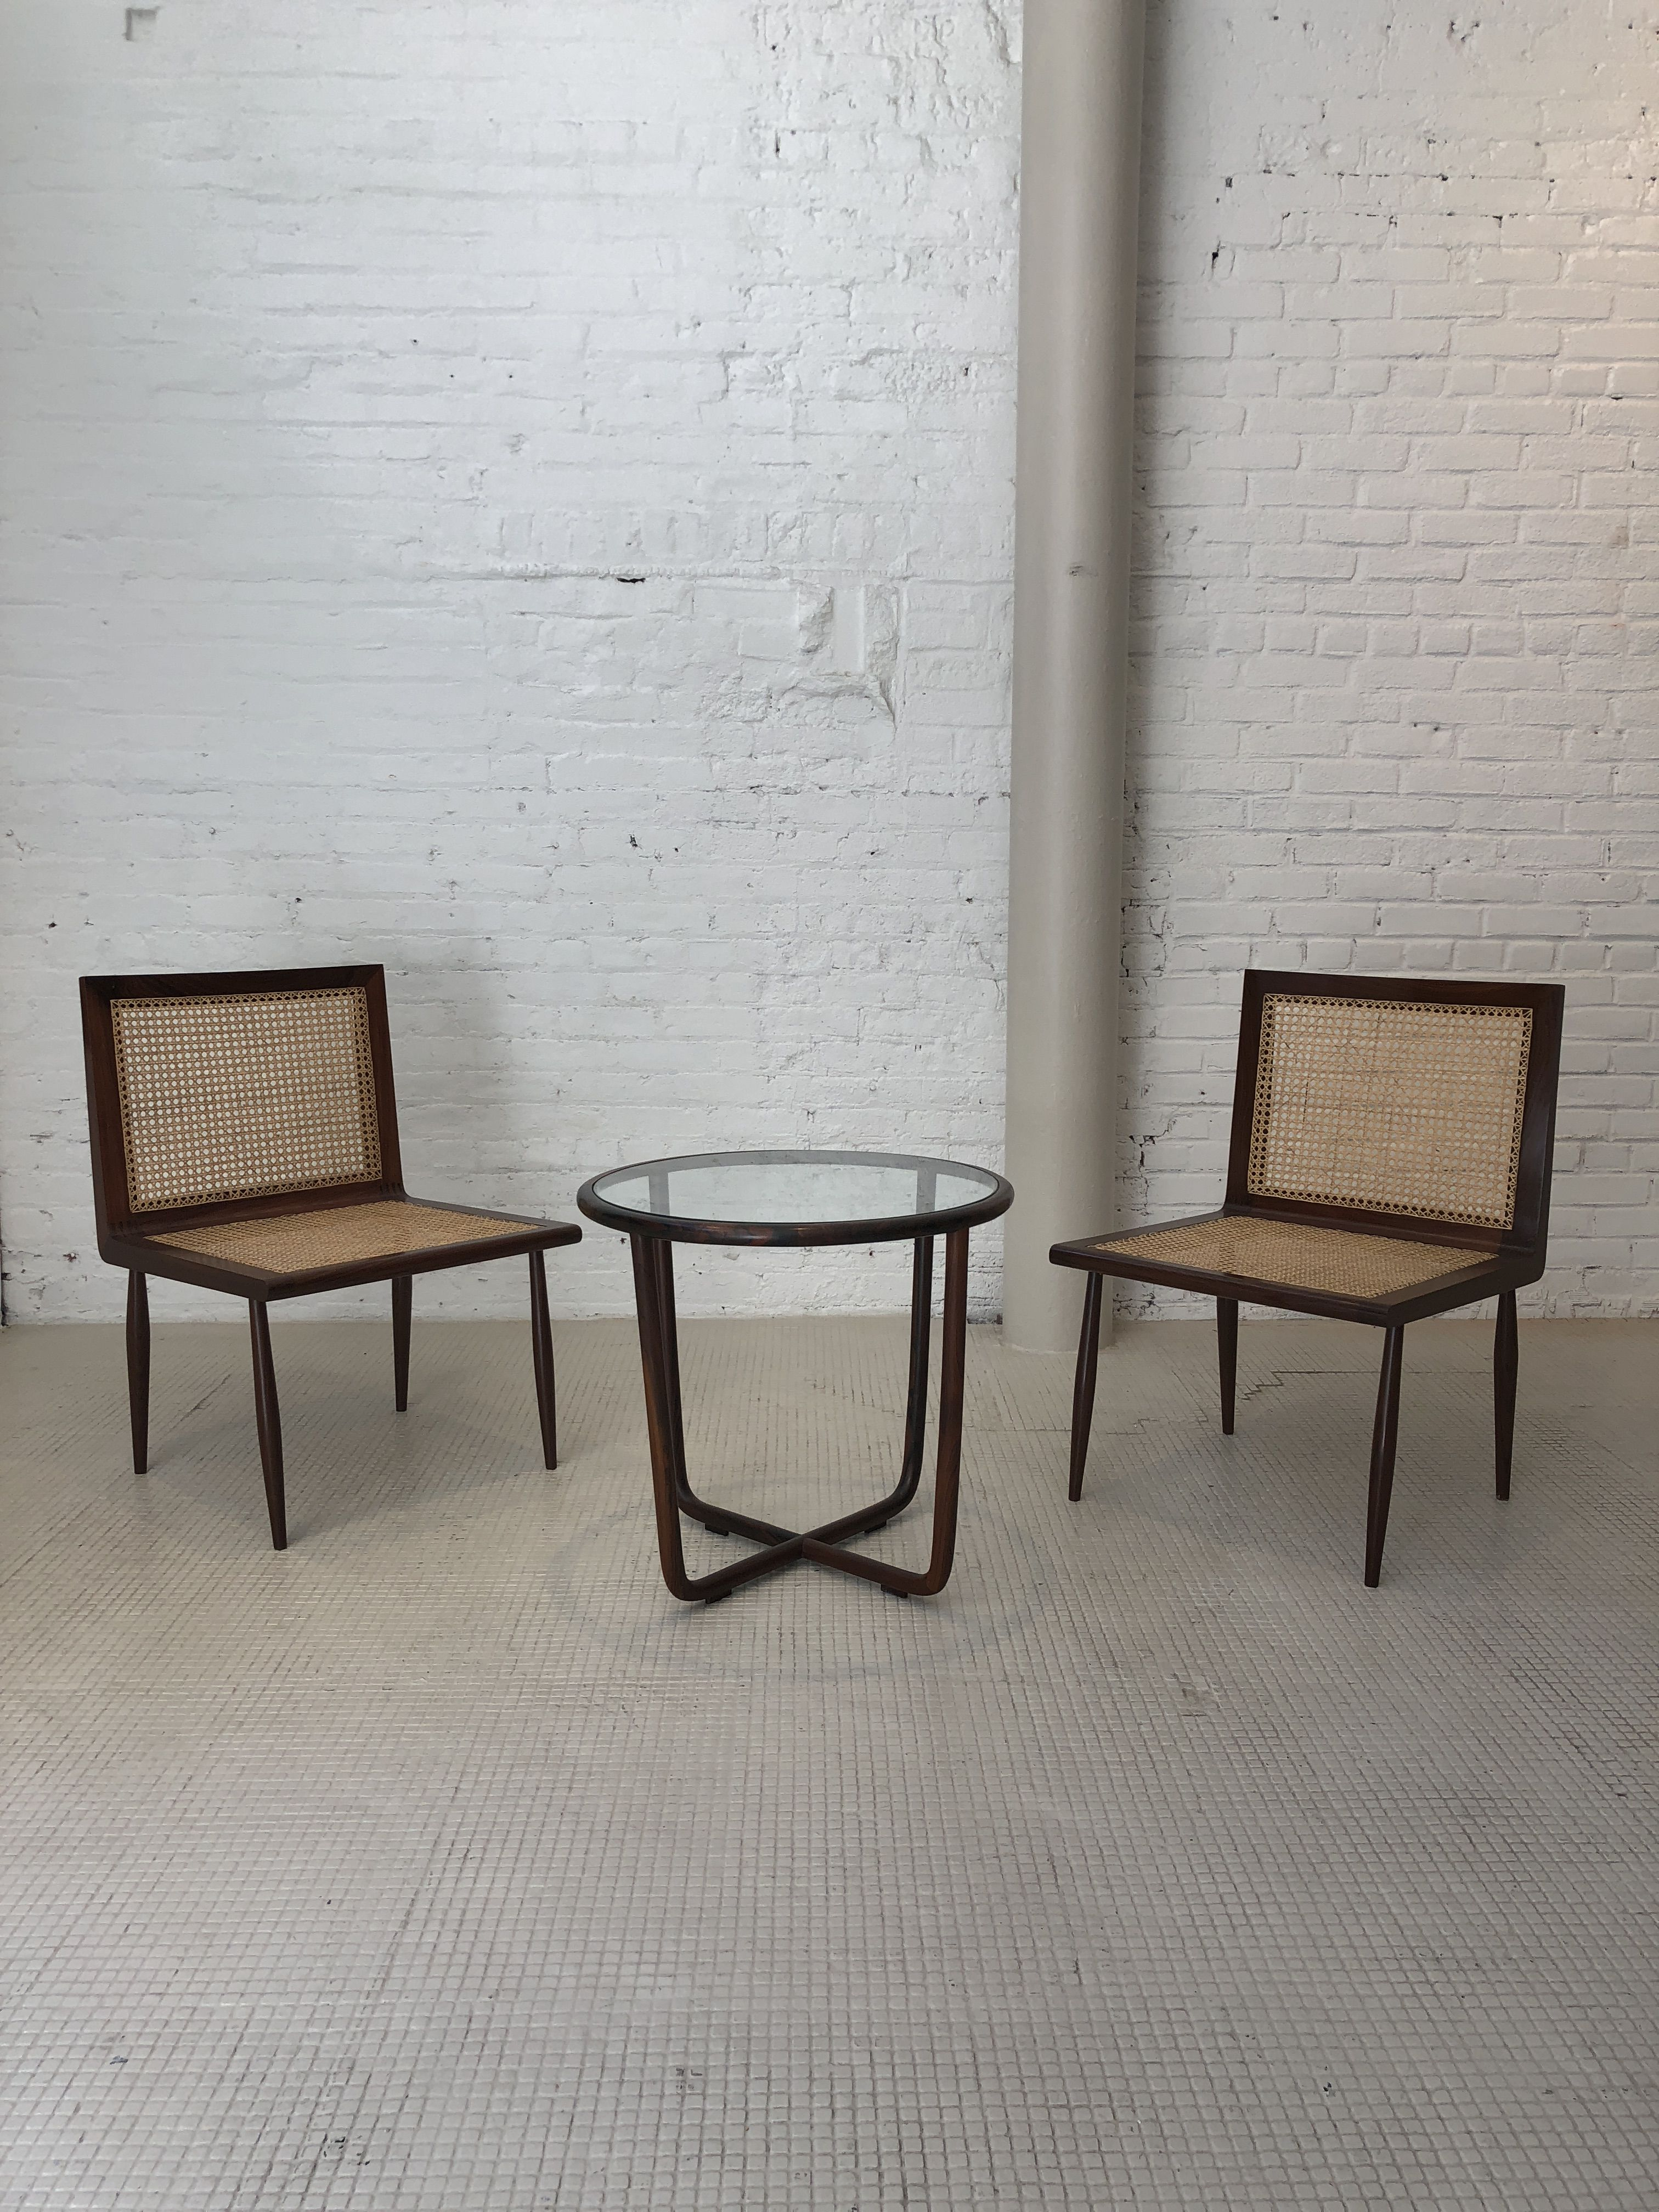 Vintage Low Bedroom chairs by Joaquim Tenreiro available at